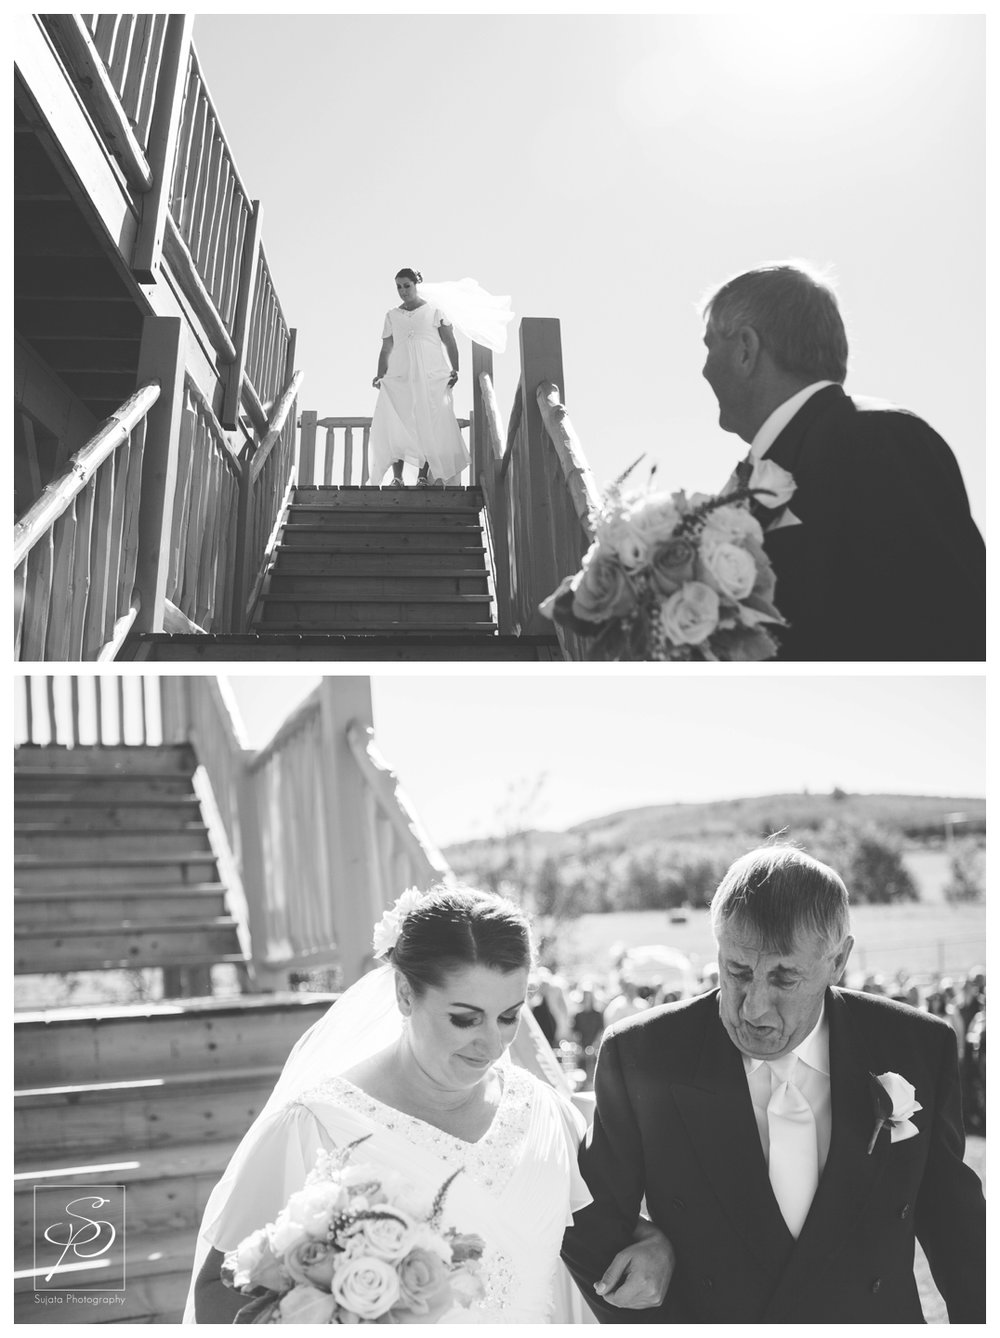 Bride meeting her dad to walk down the aisle